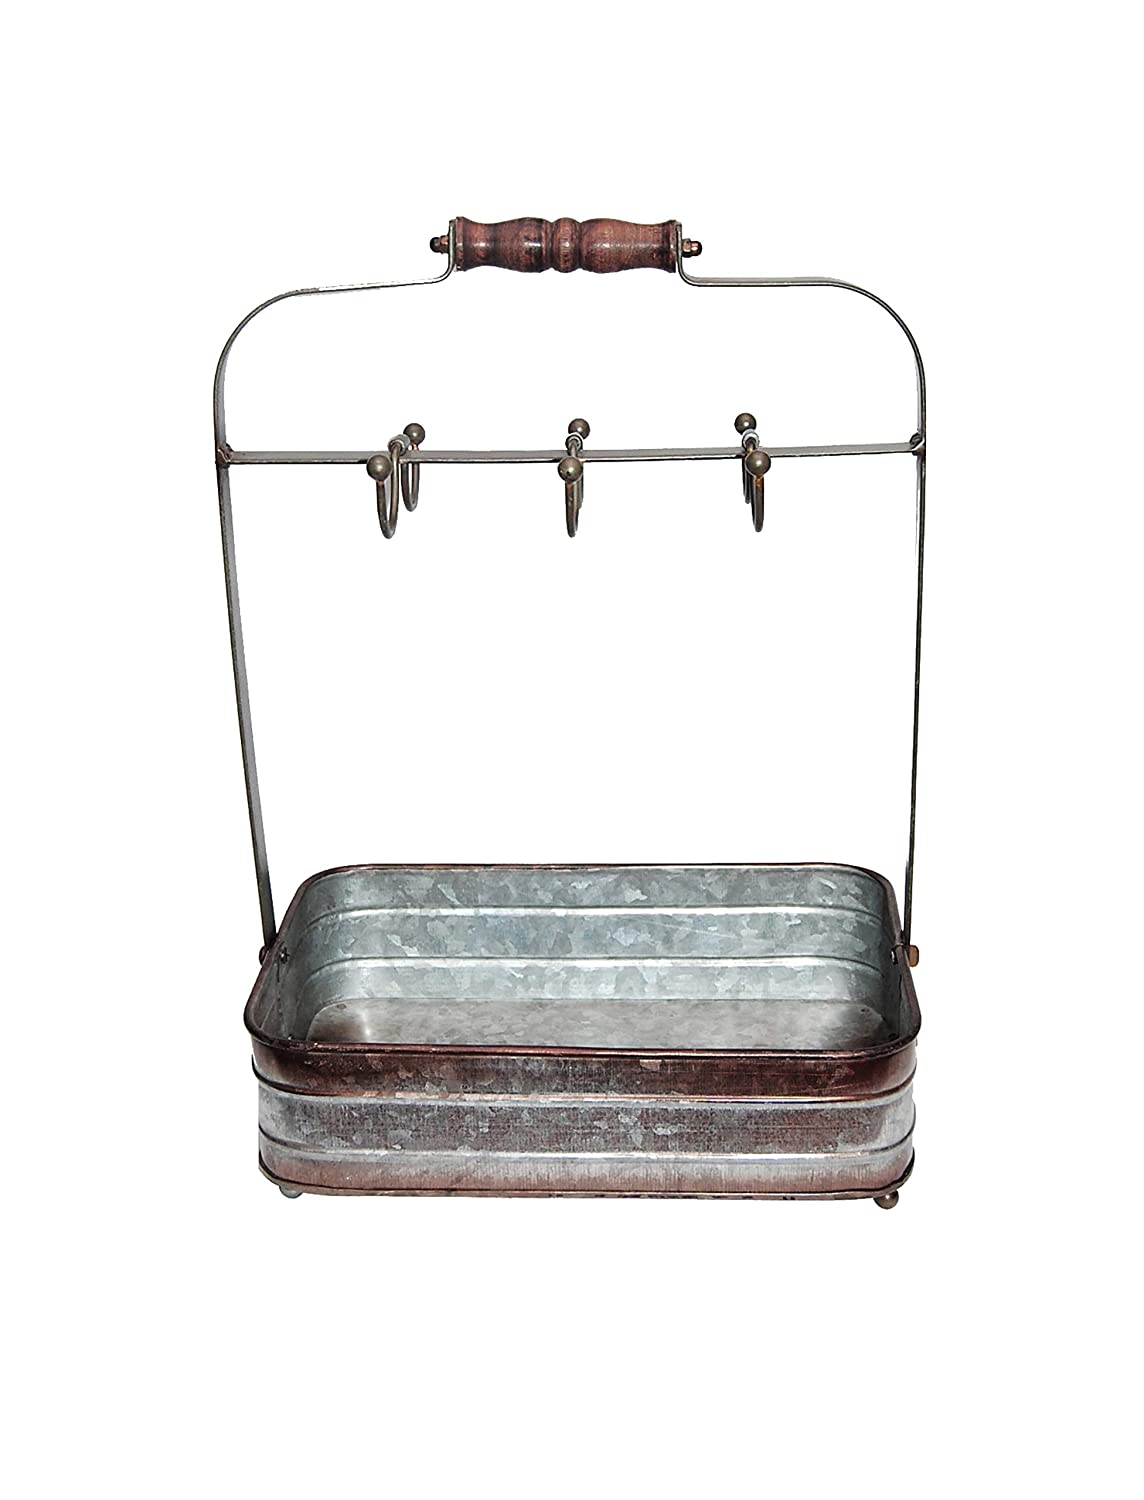 Benzara BM177866 Rustic Galvanized Metal Crockery Holder with Cup Hooks, Gray